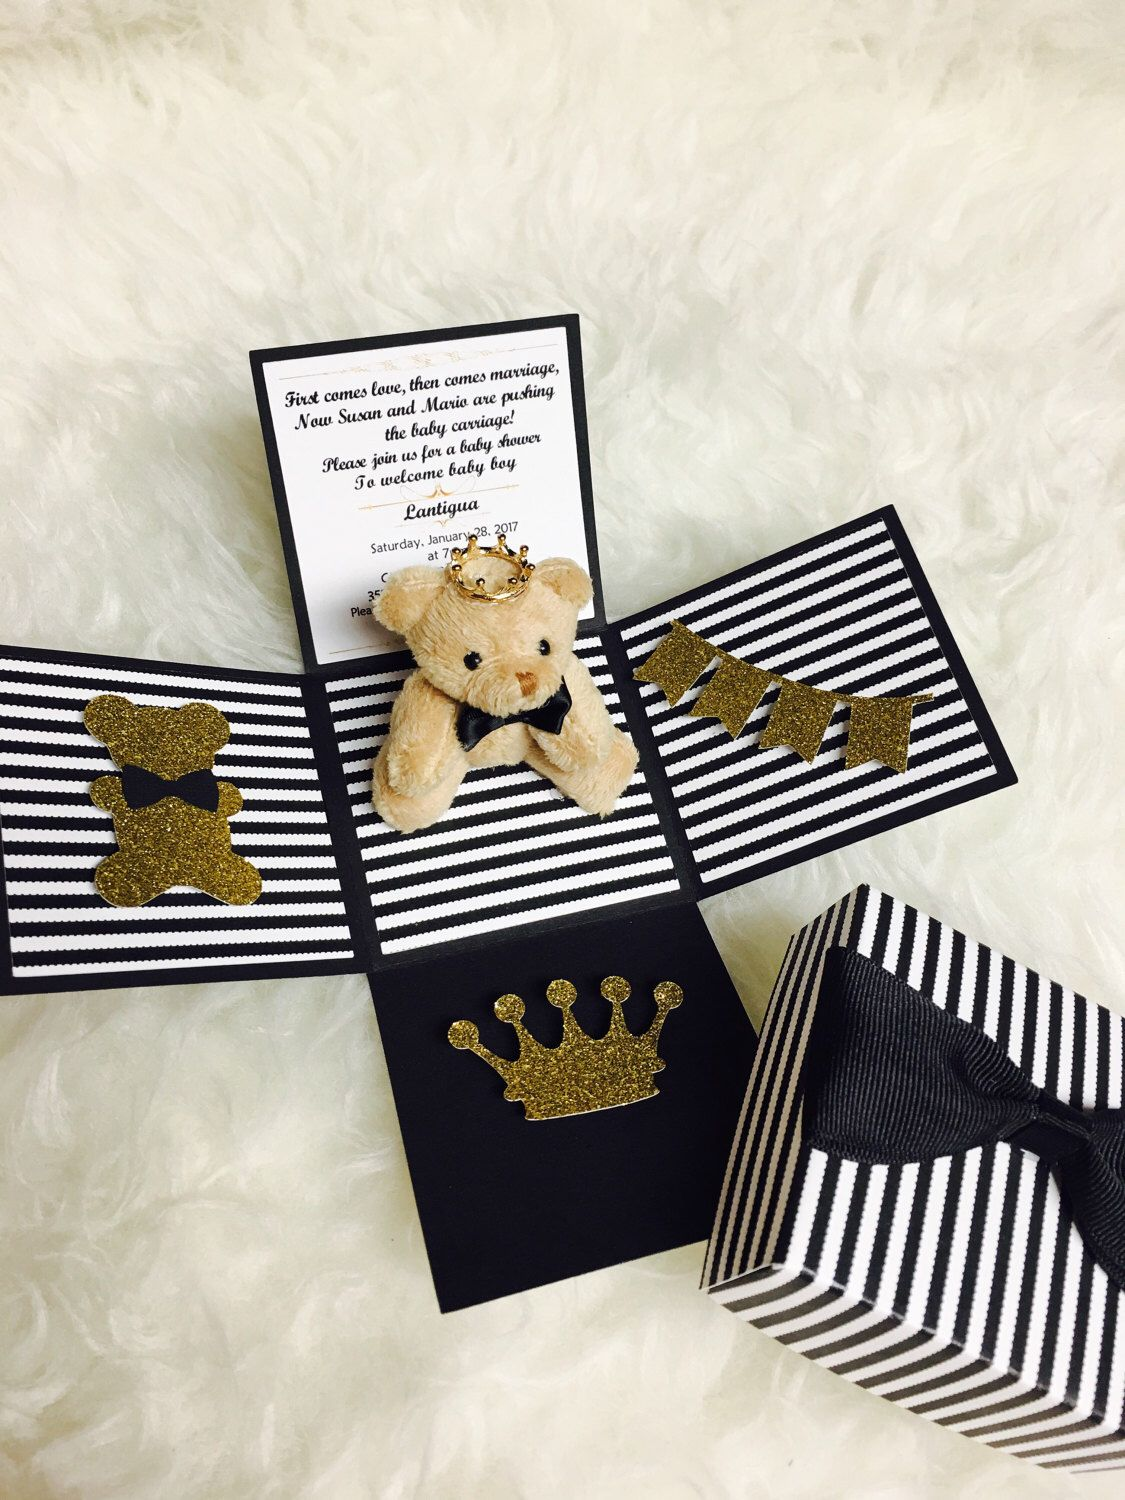 Black bow tie teddy bear baby shower invitation teddy bear theme baby shower invitations invite bow tie theme a personal favorite from my etsy shop httpsetsy filmwisefo